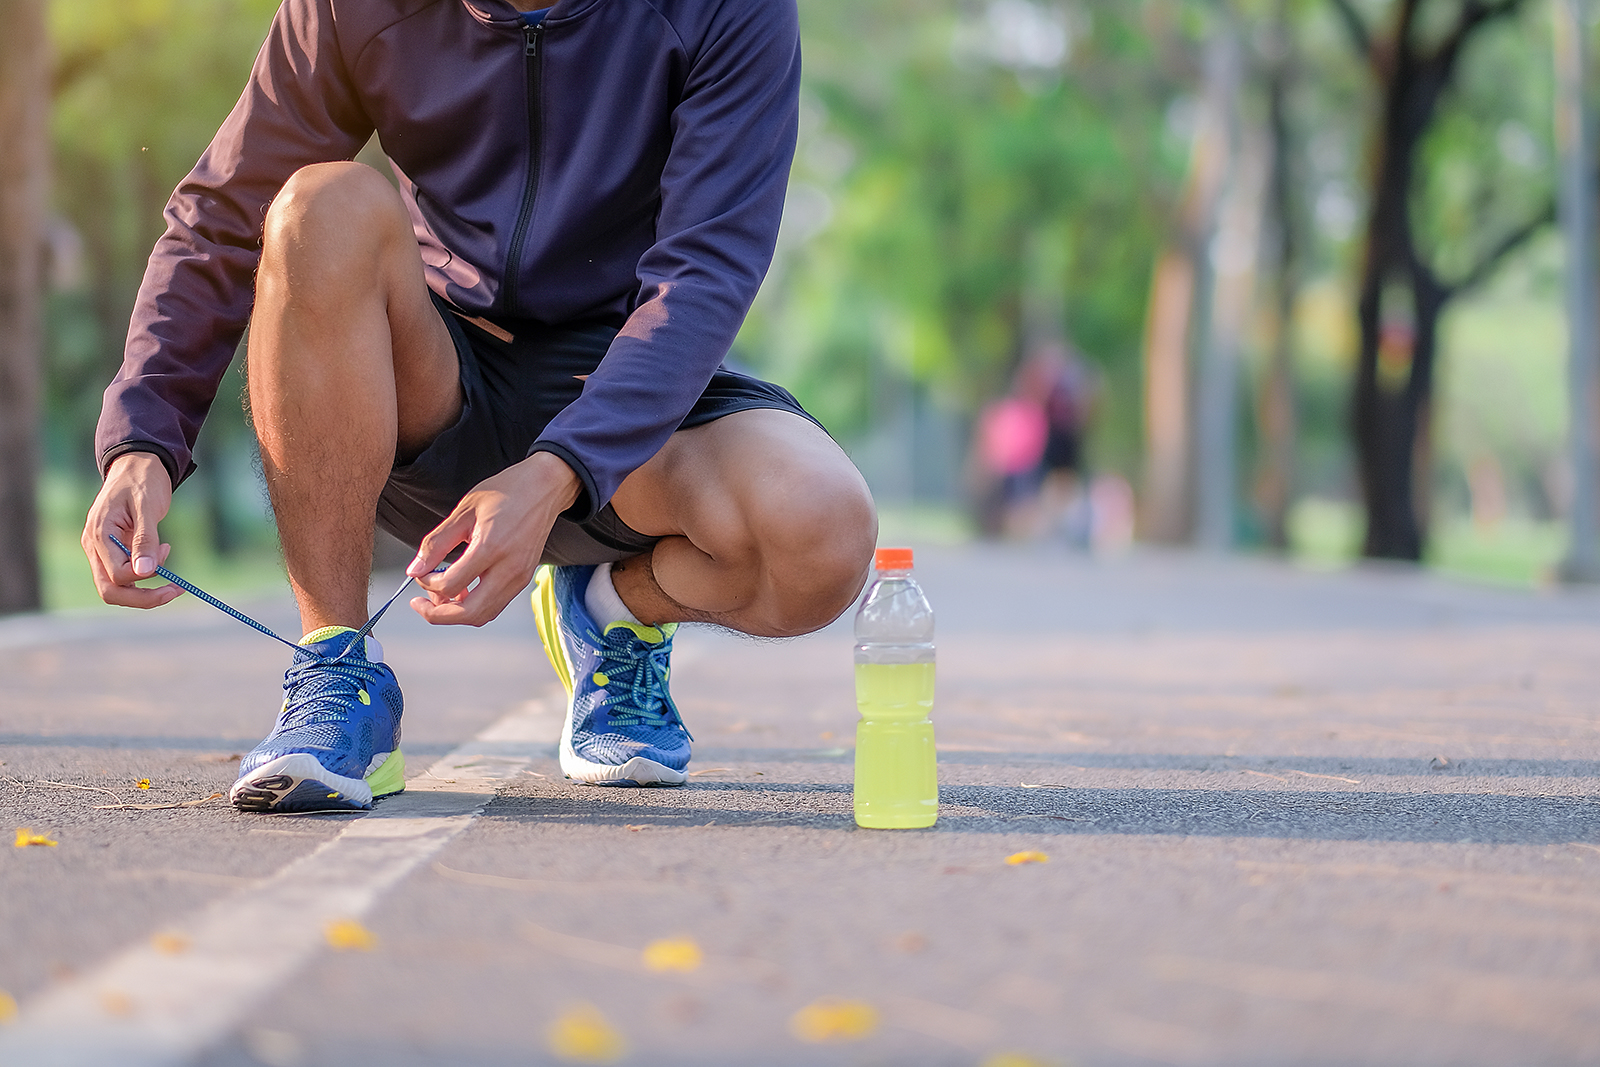 Male runner ties sneakers on a paved trail